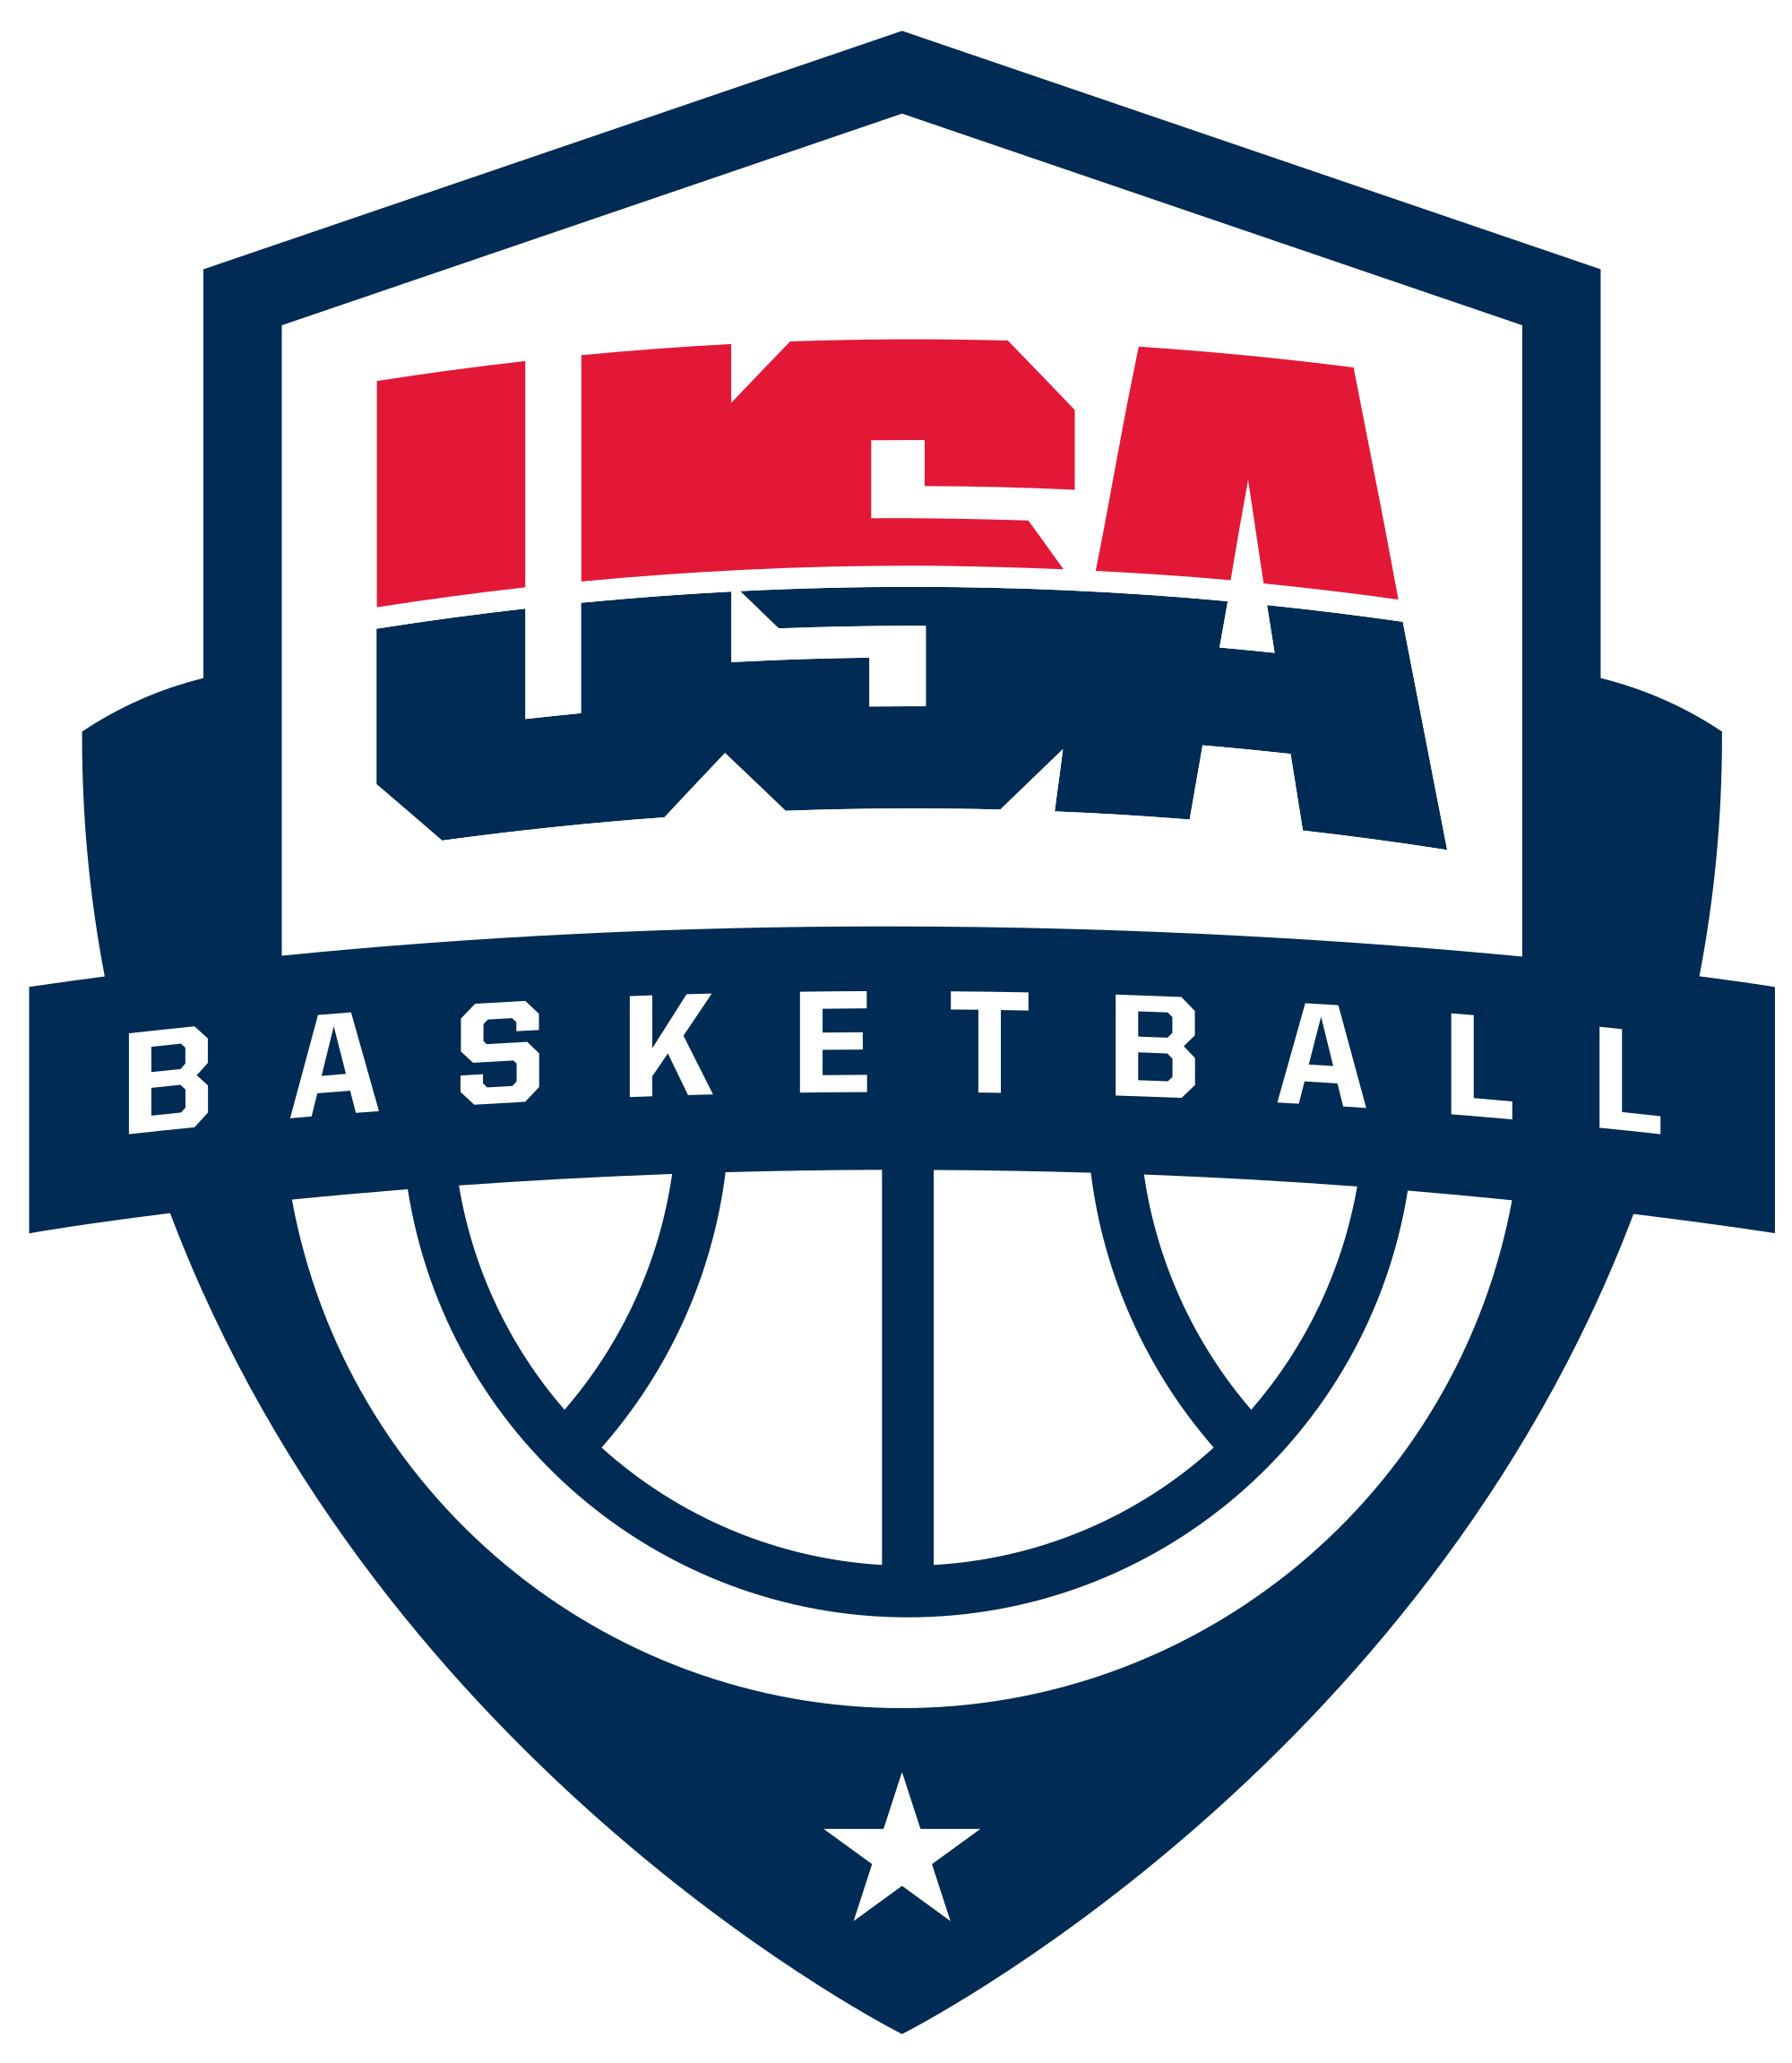 Basketball logos png. File usa logo svg